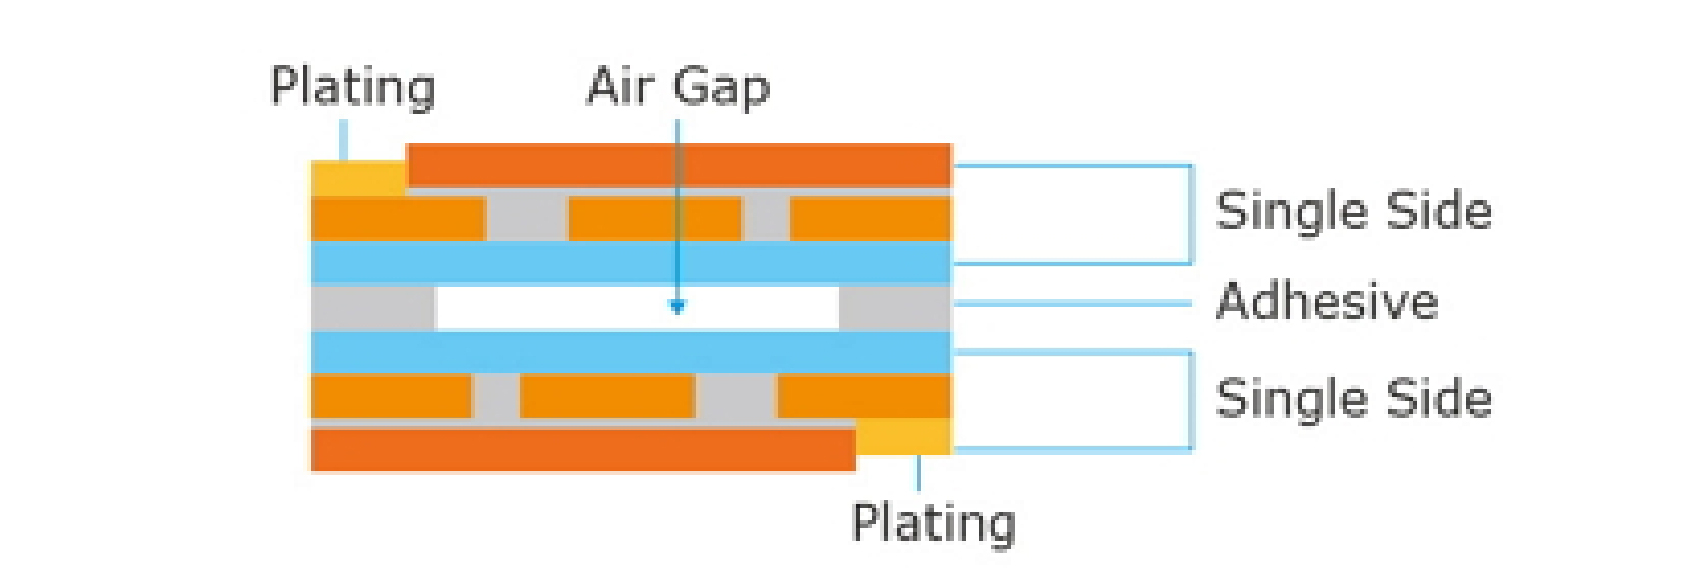 Air Gap Structure Img1